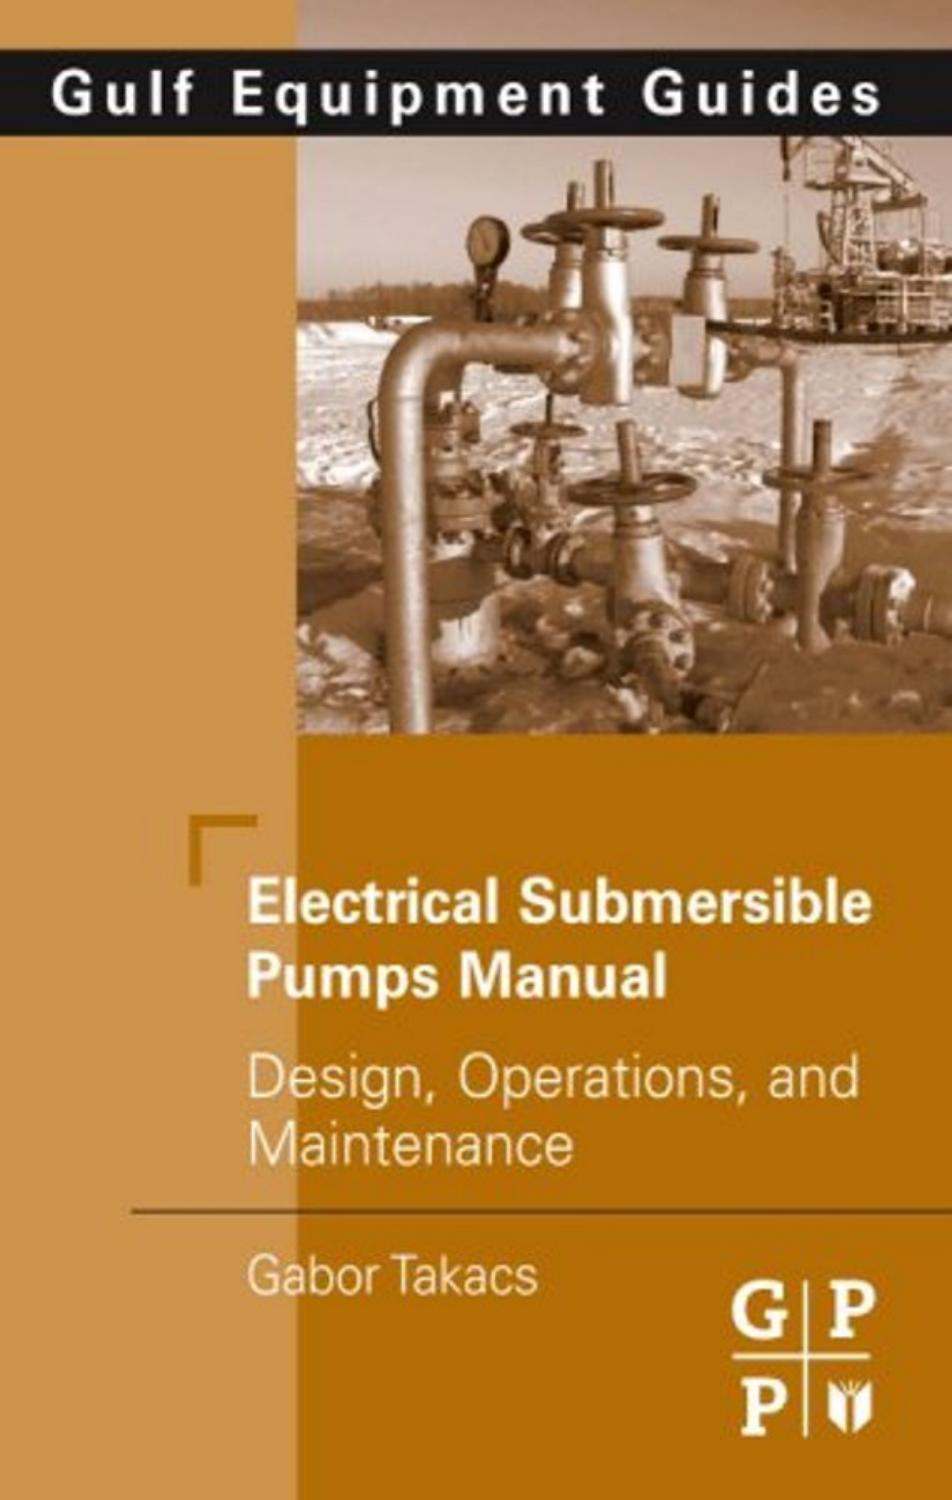 medium resolution of electrical submersible pumps manual design operations and maintenance